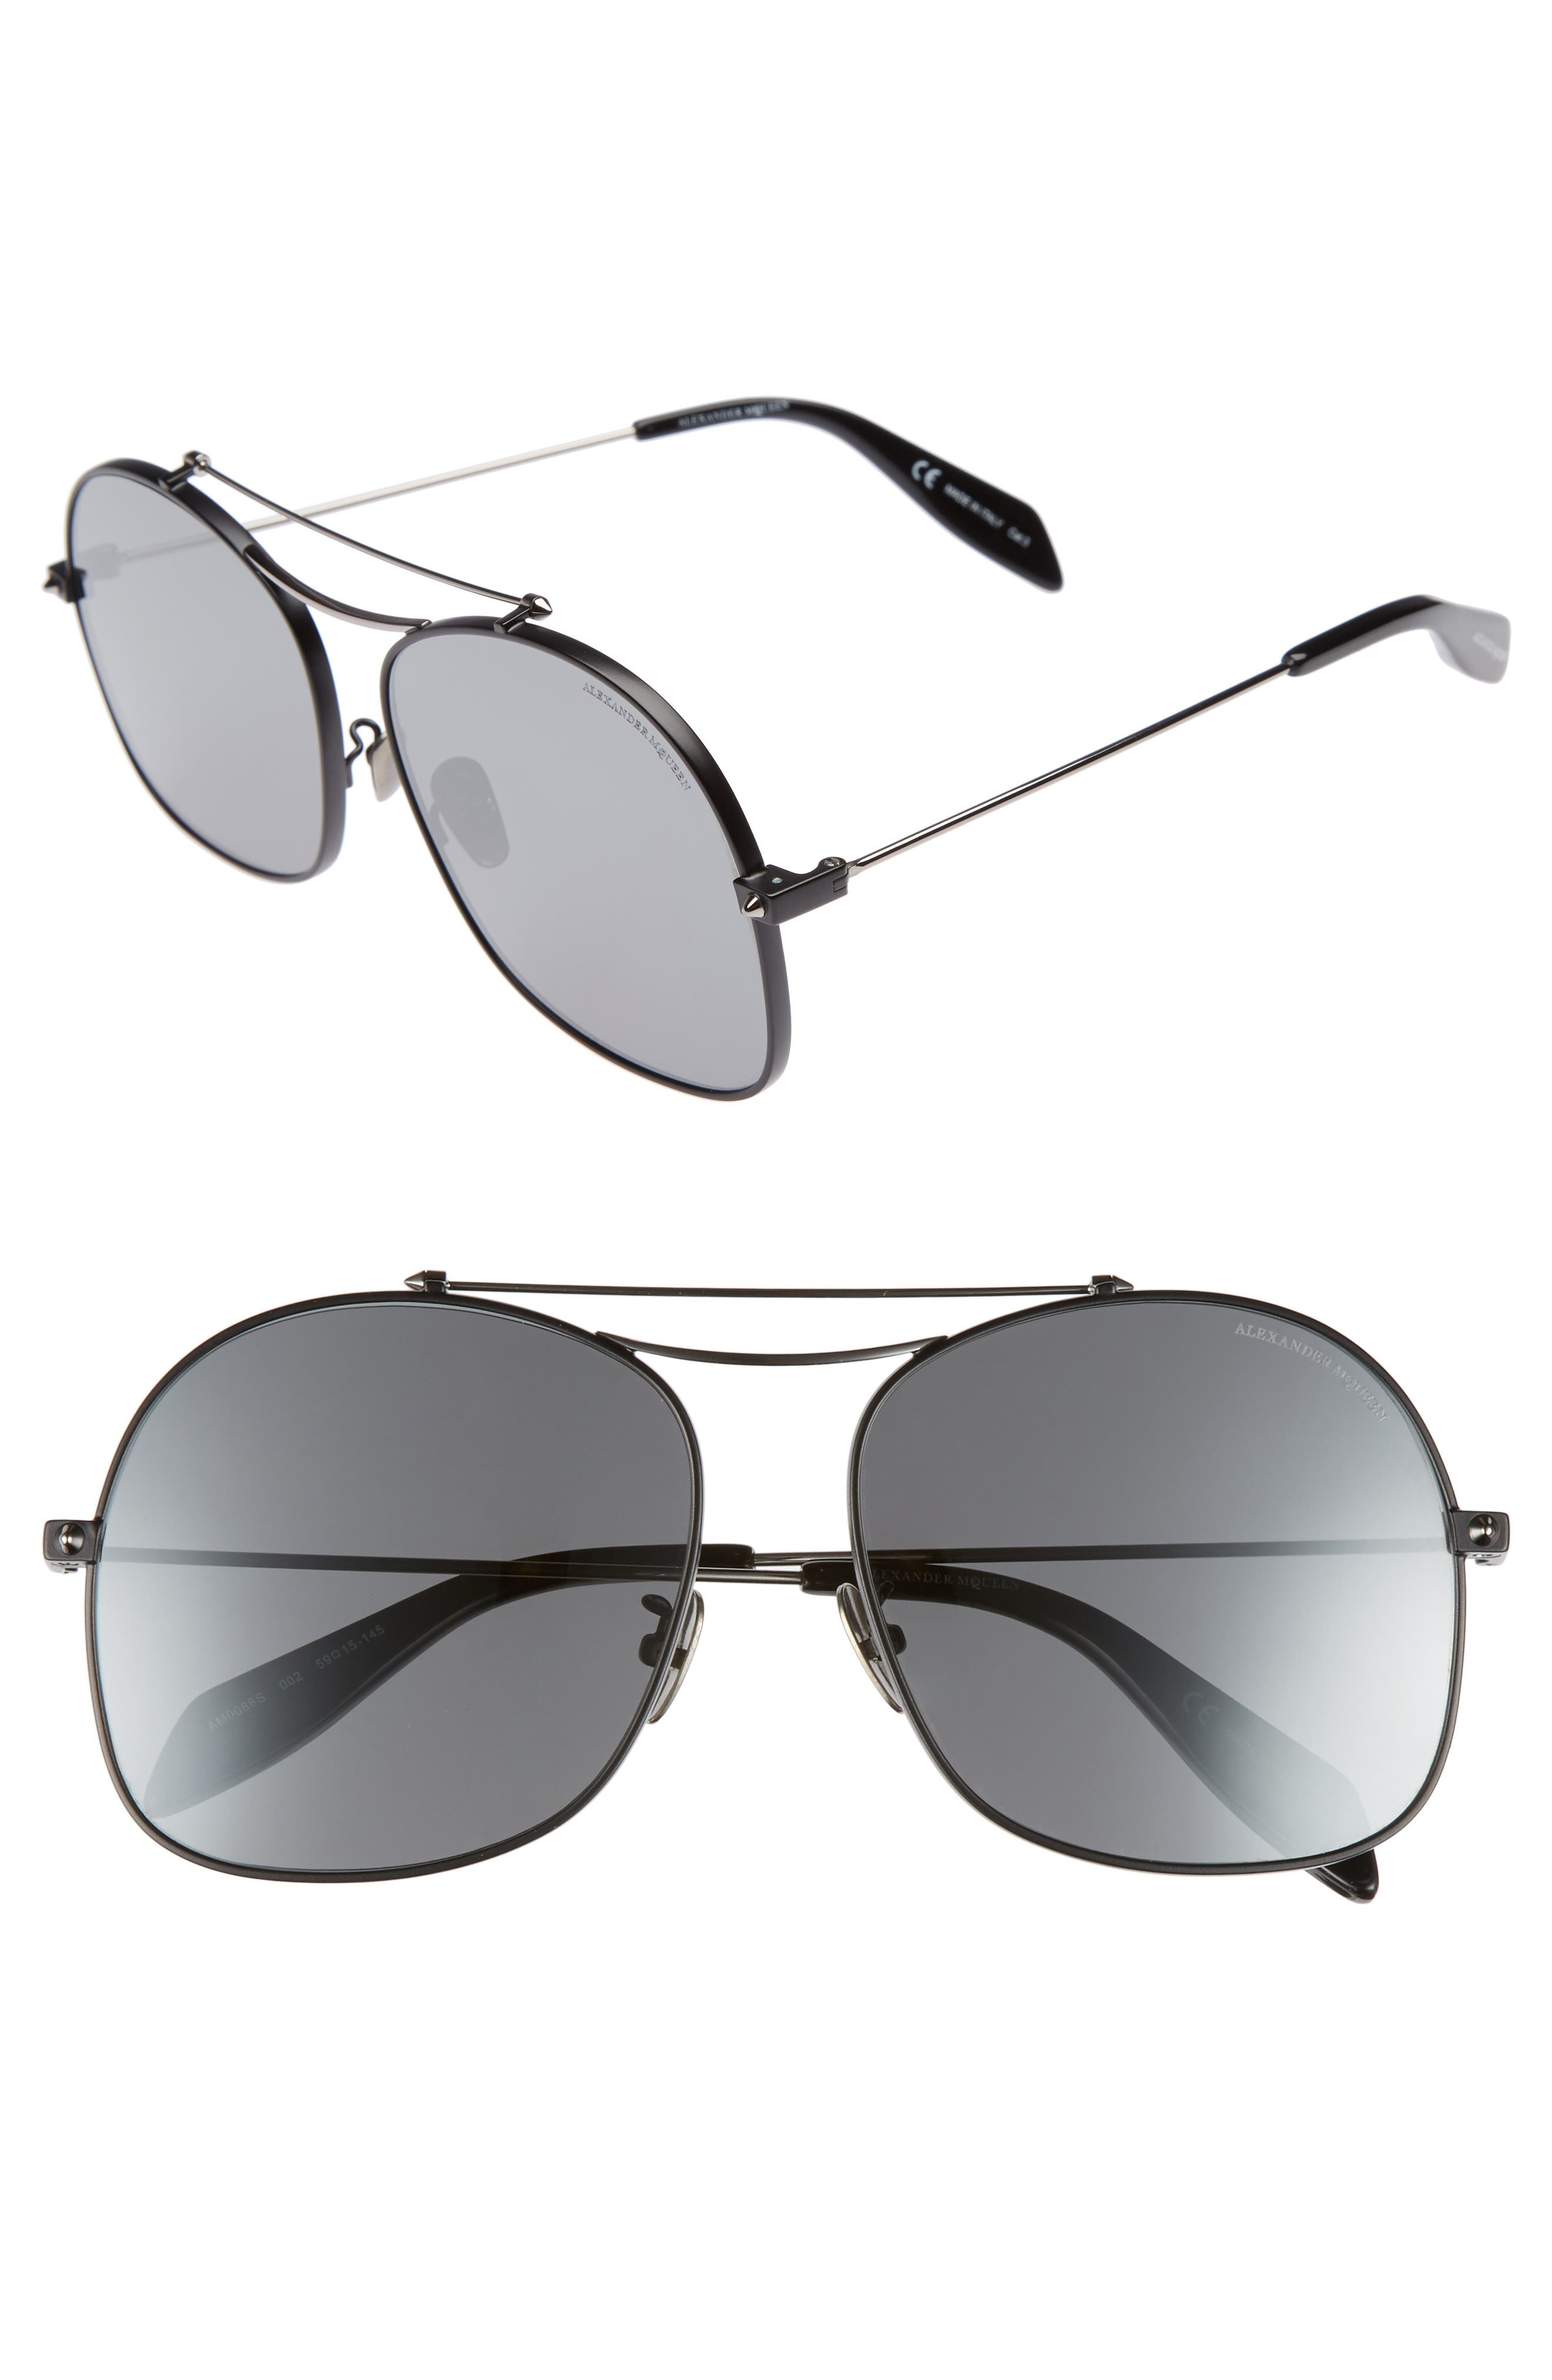 59mm Aviator Sunglasses,                         Main,                         color, Black